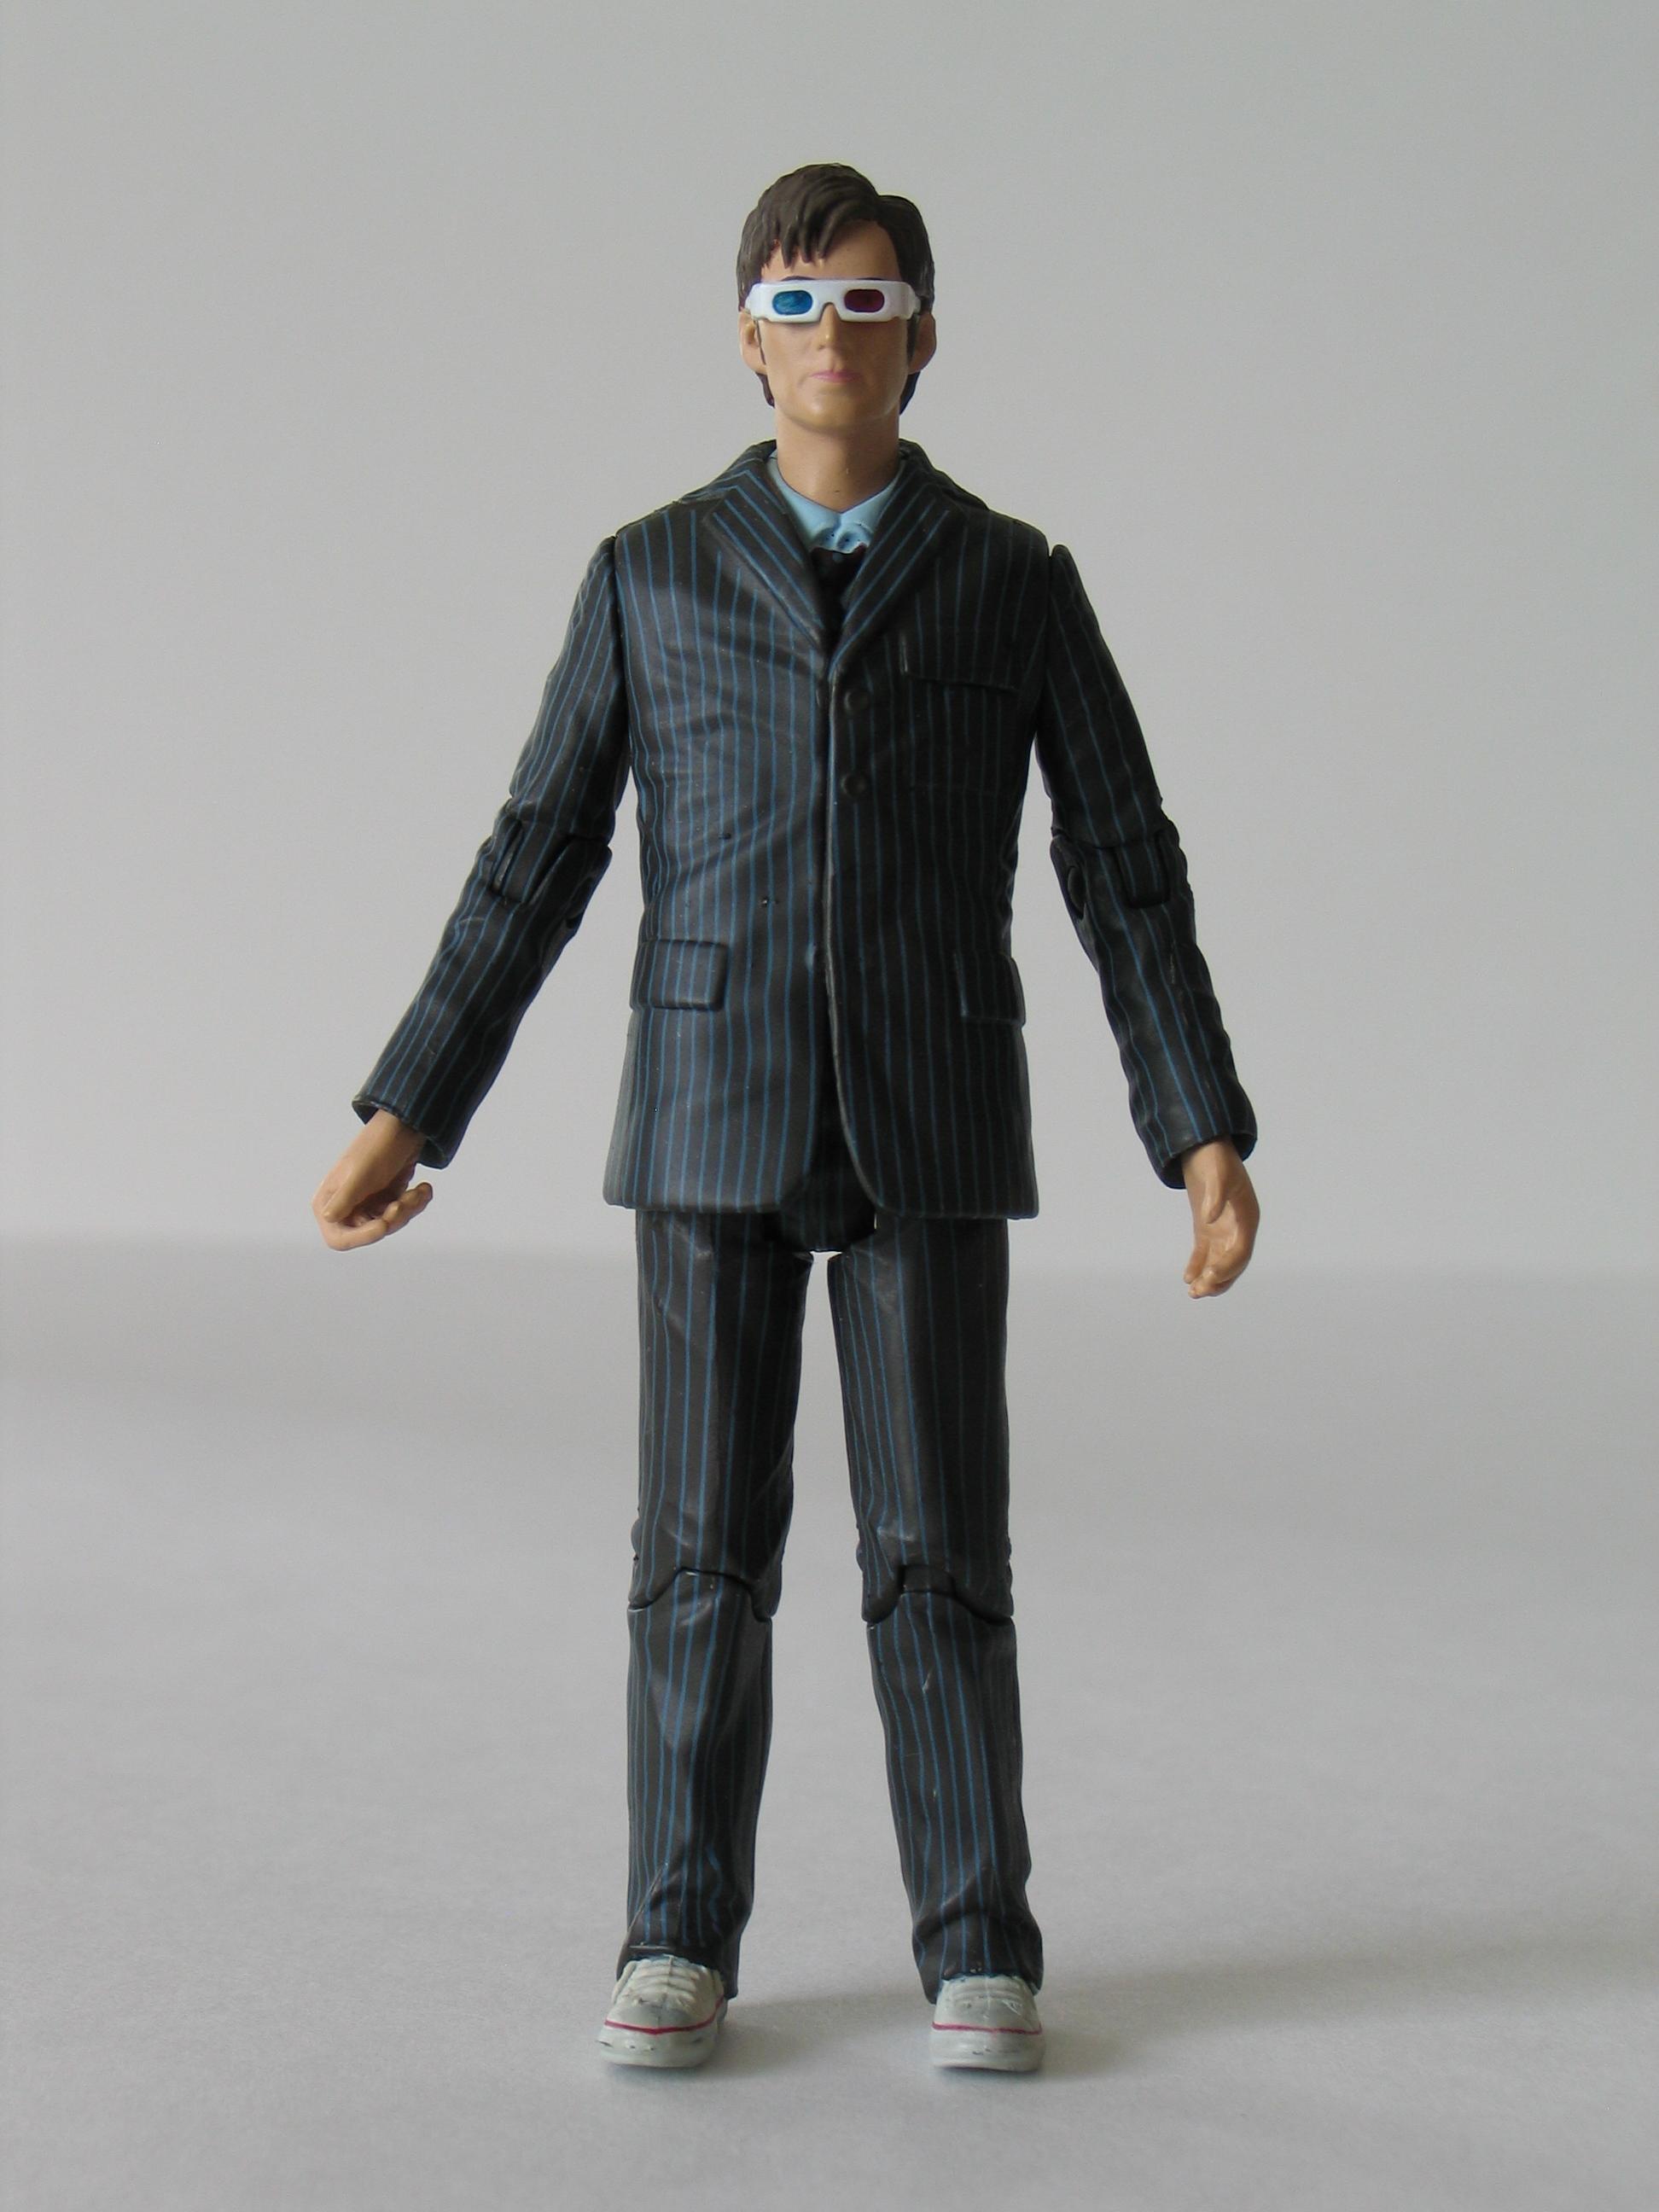 Big Chief Studios Doctor Who One Sixth Limited Edition 10th Doctor